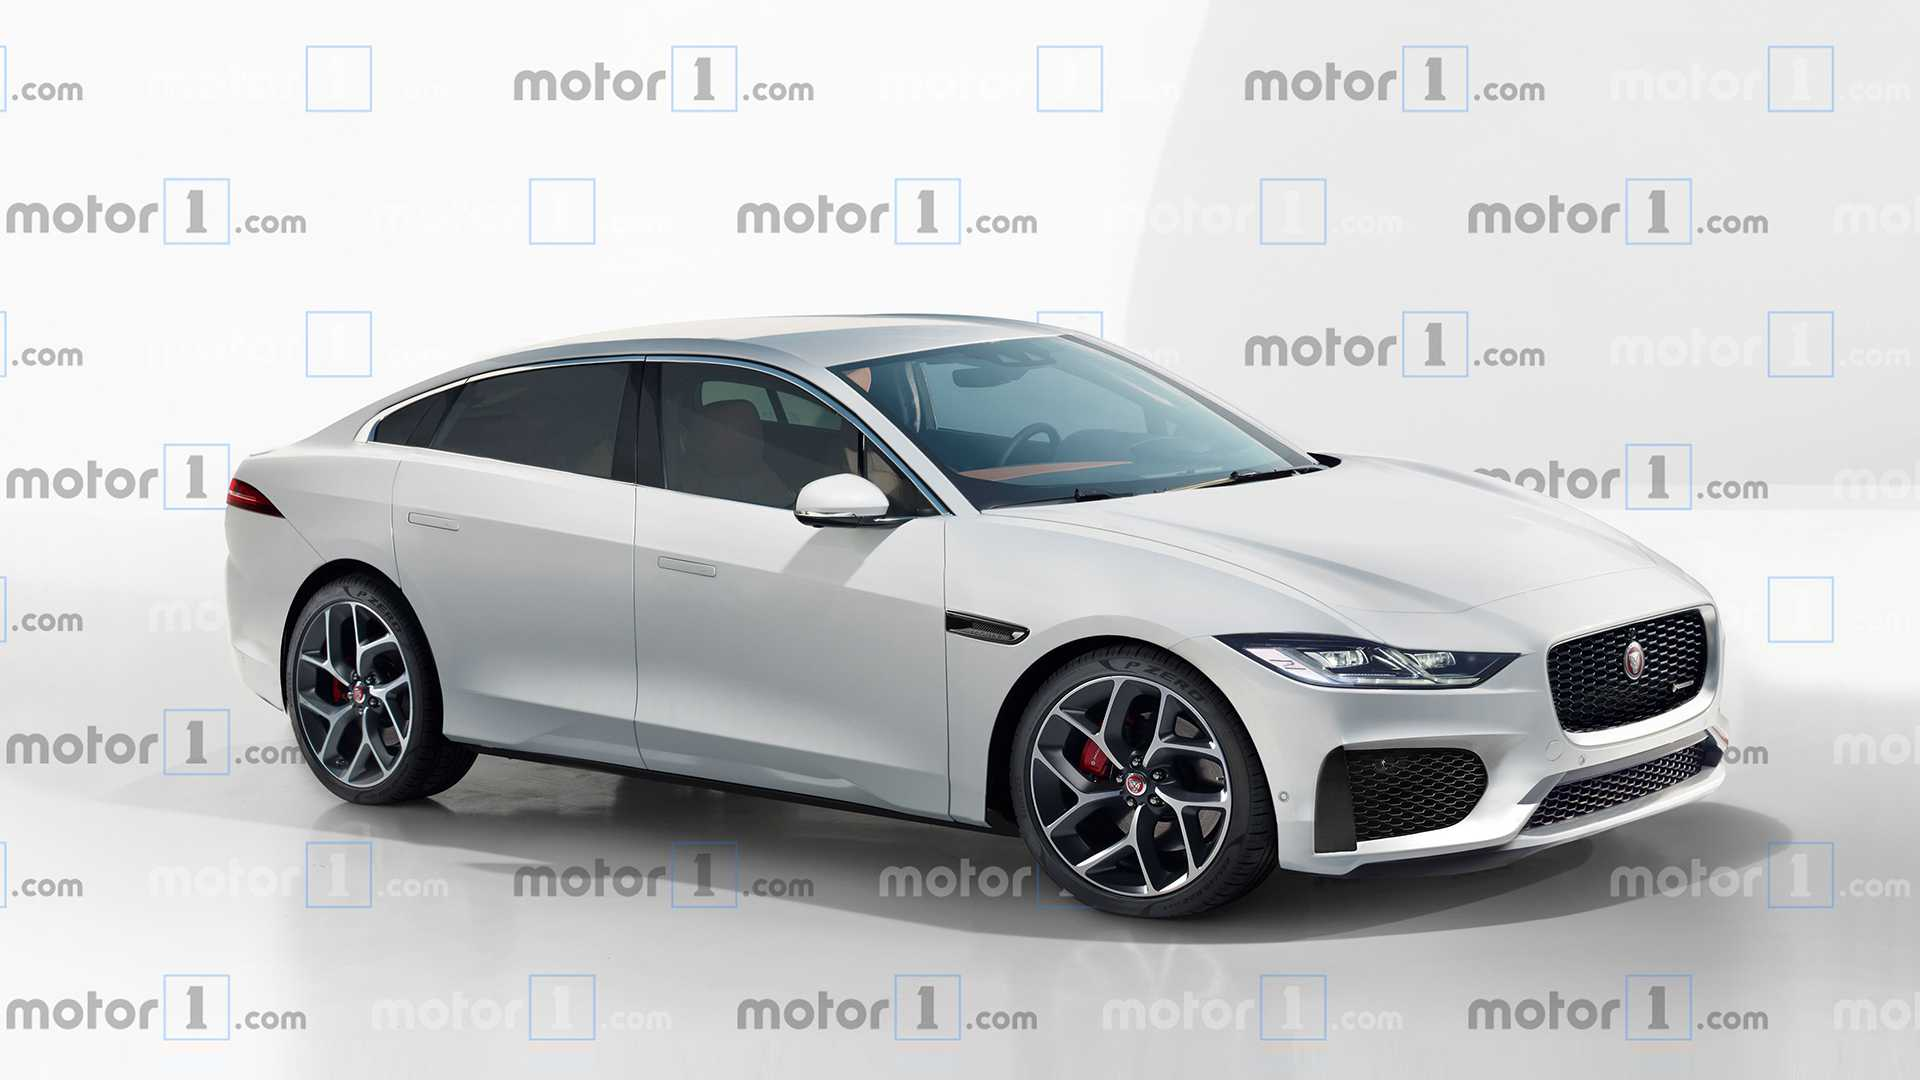 59 New Jaguar Xf New Model 2020 Concept And Review